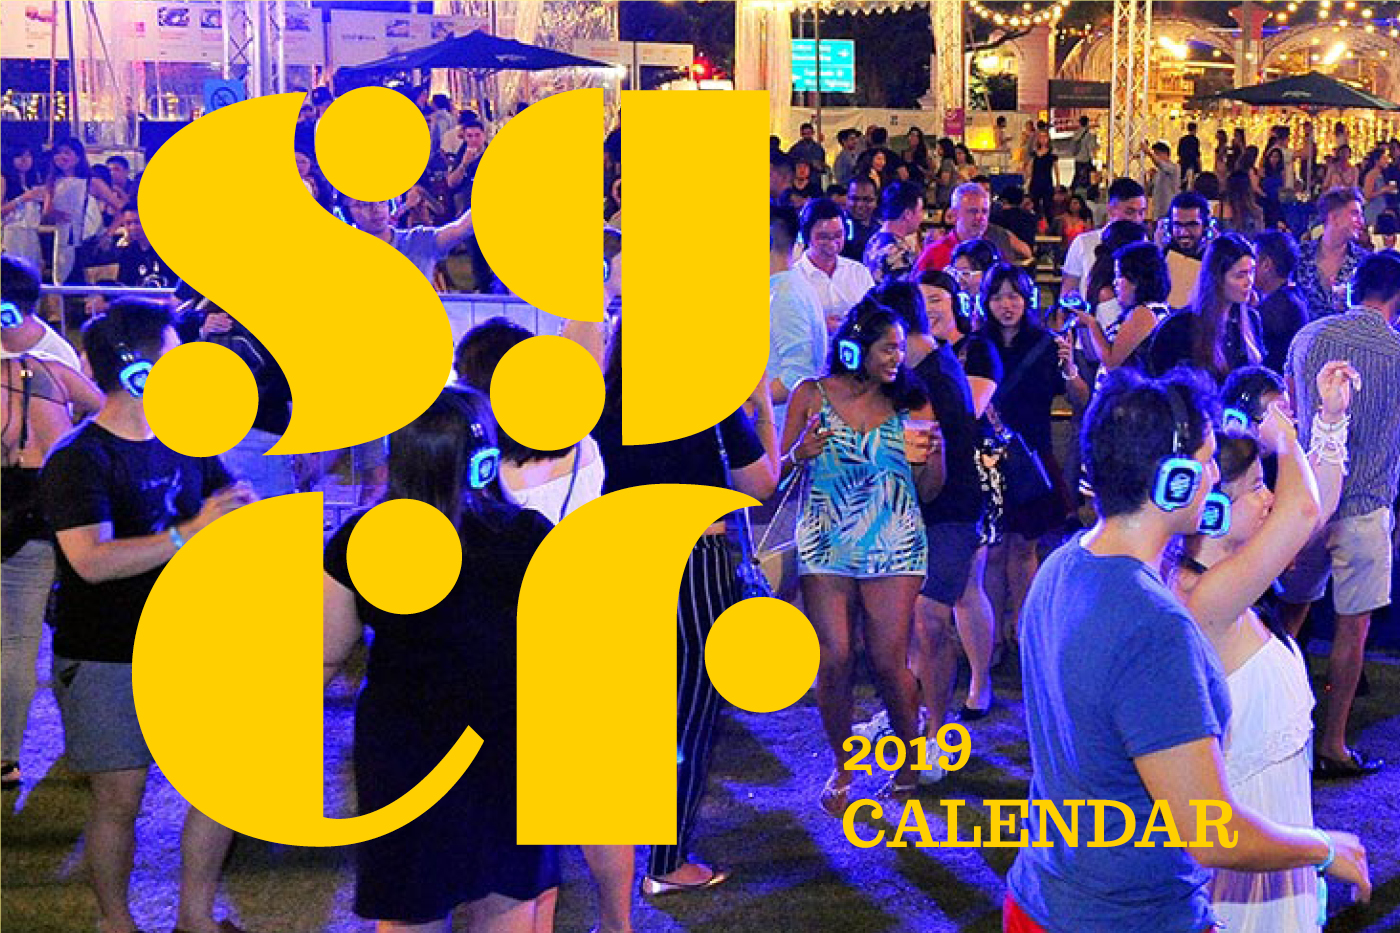 Singapore Cocktail Festival 2019 Calendar: Your Ultimate Industry Guide photo